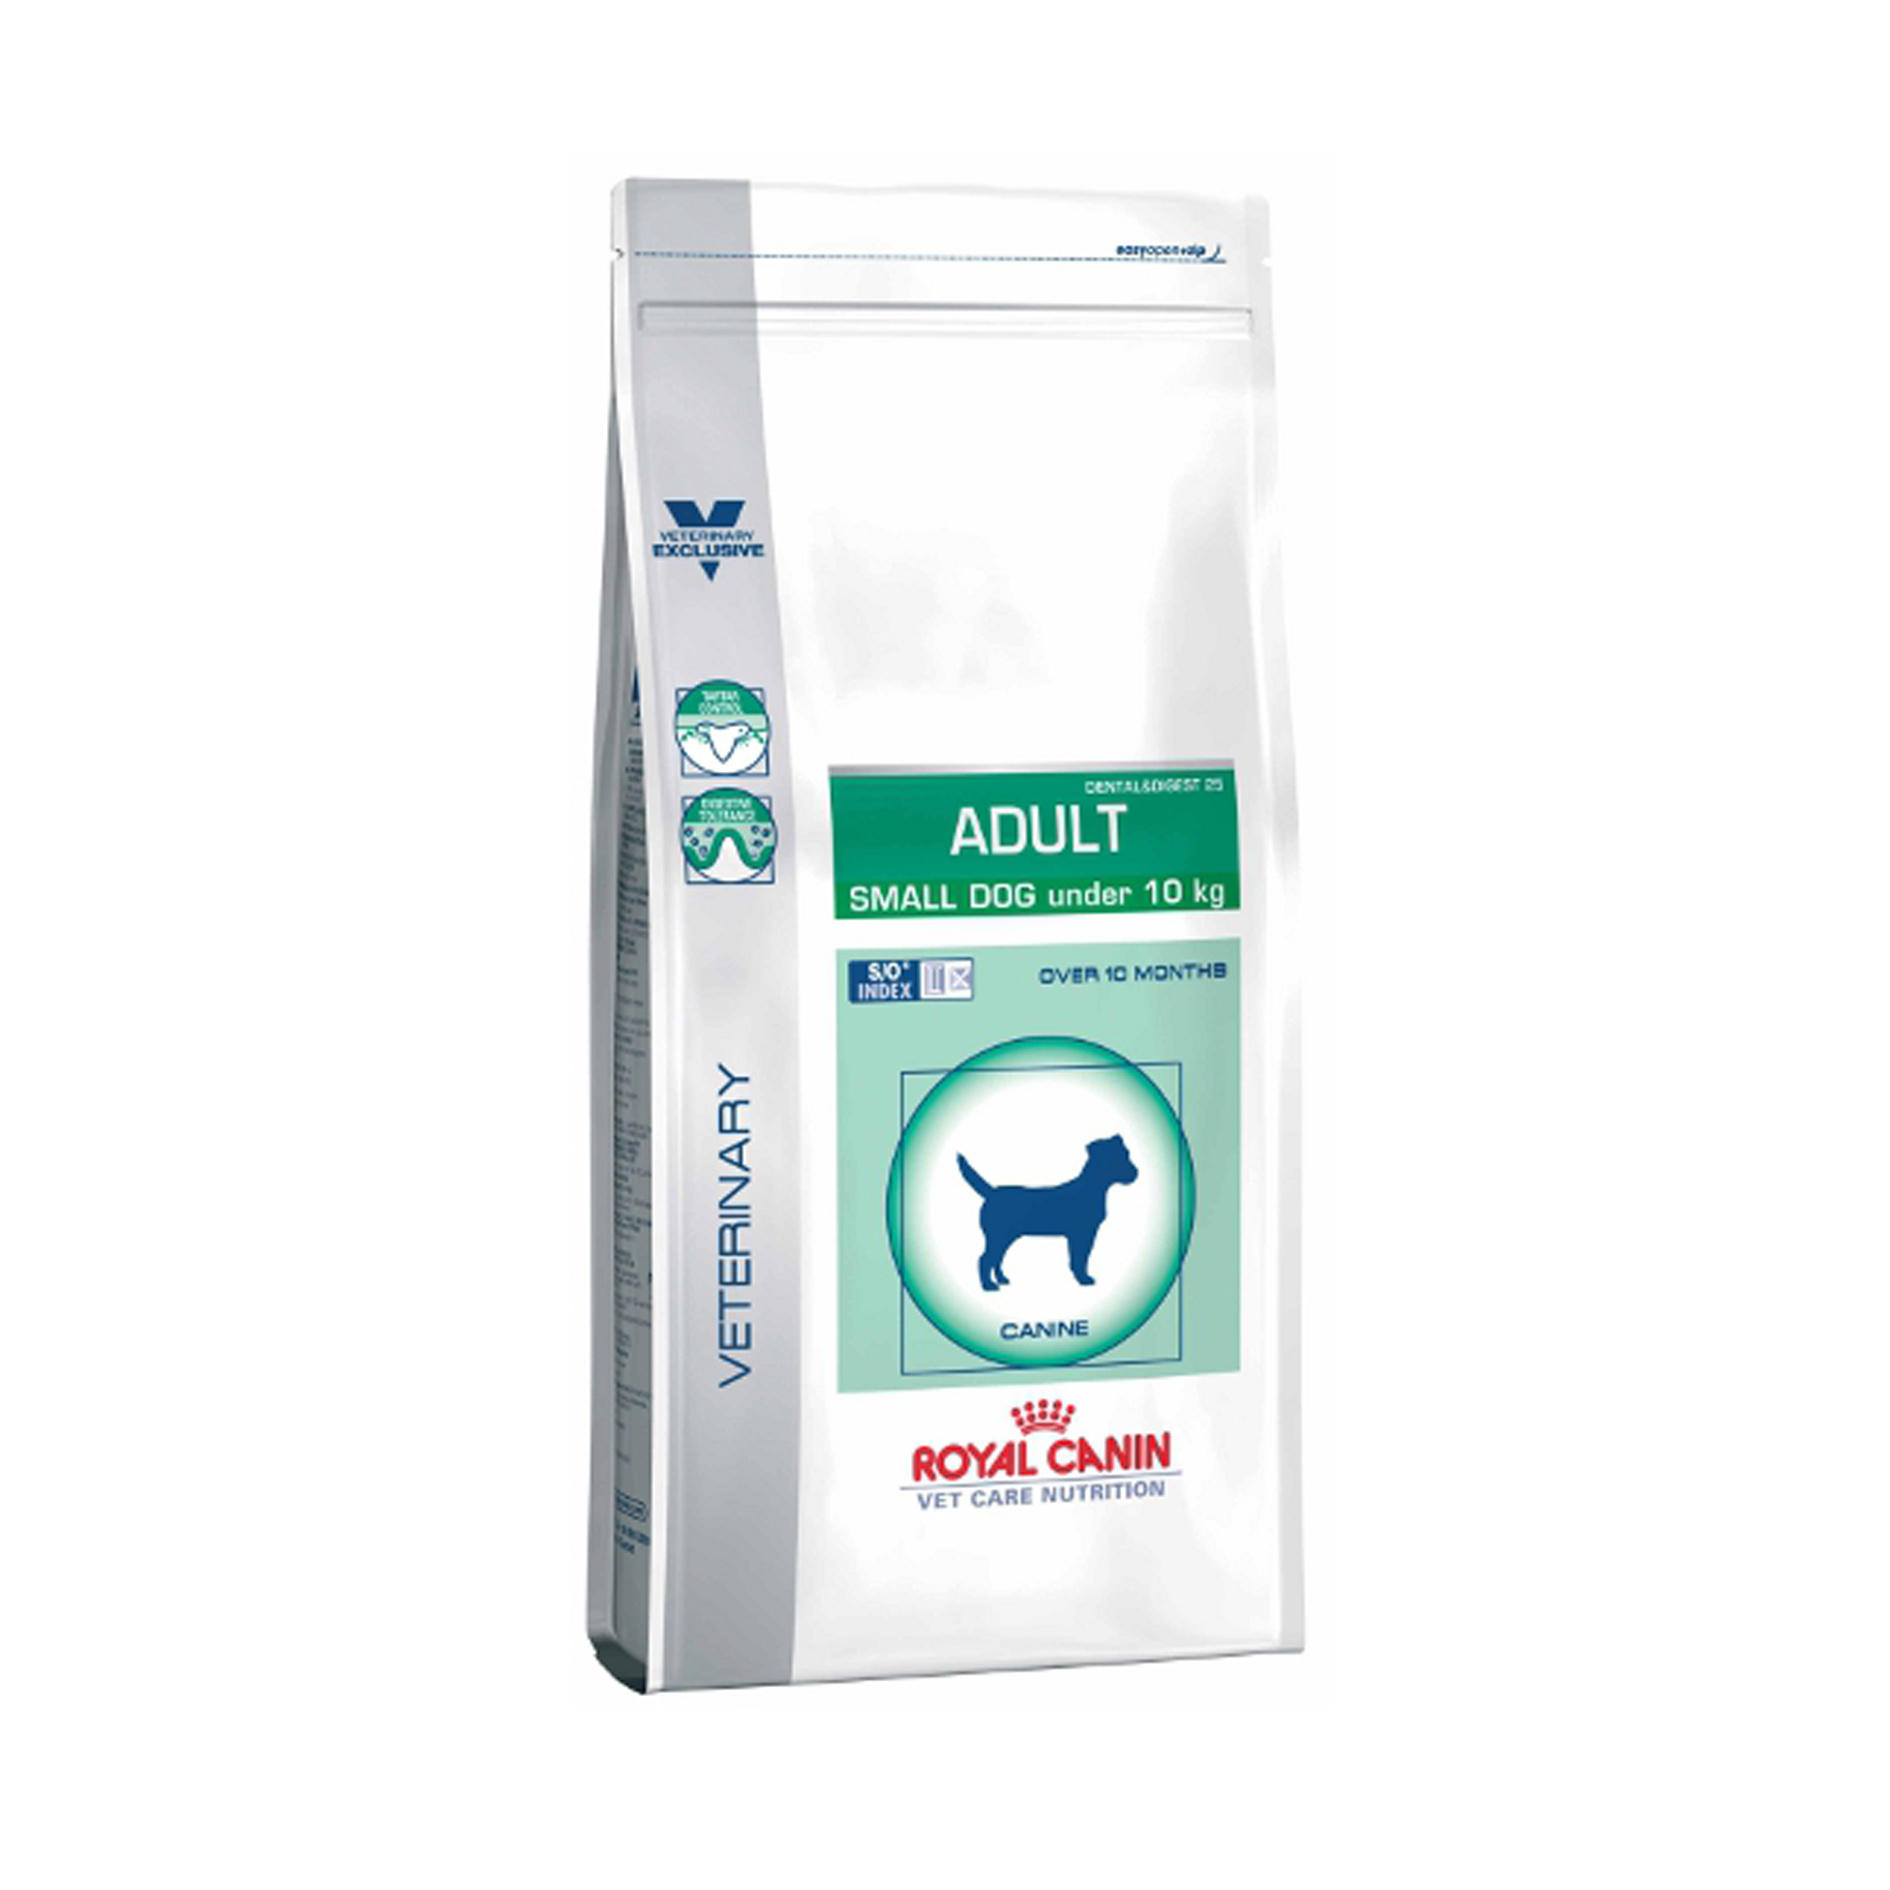 Royal Canin Canine Veterinary Care Adult Small